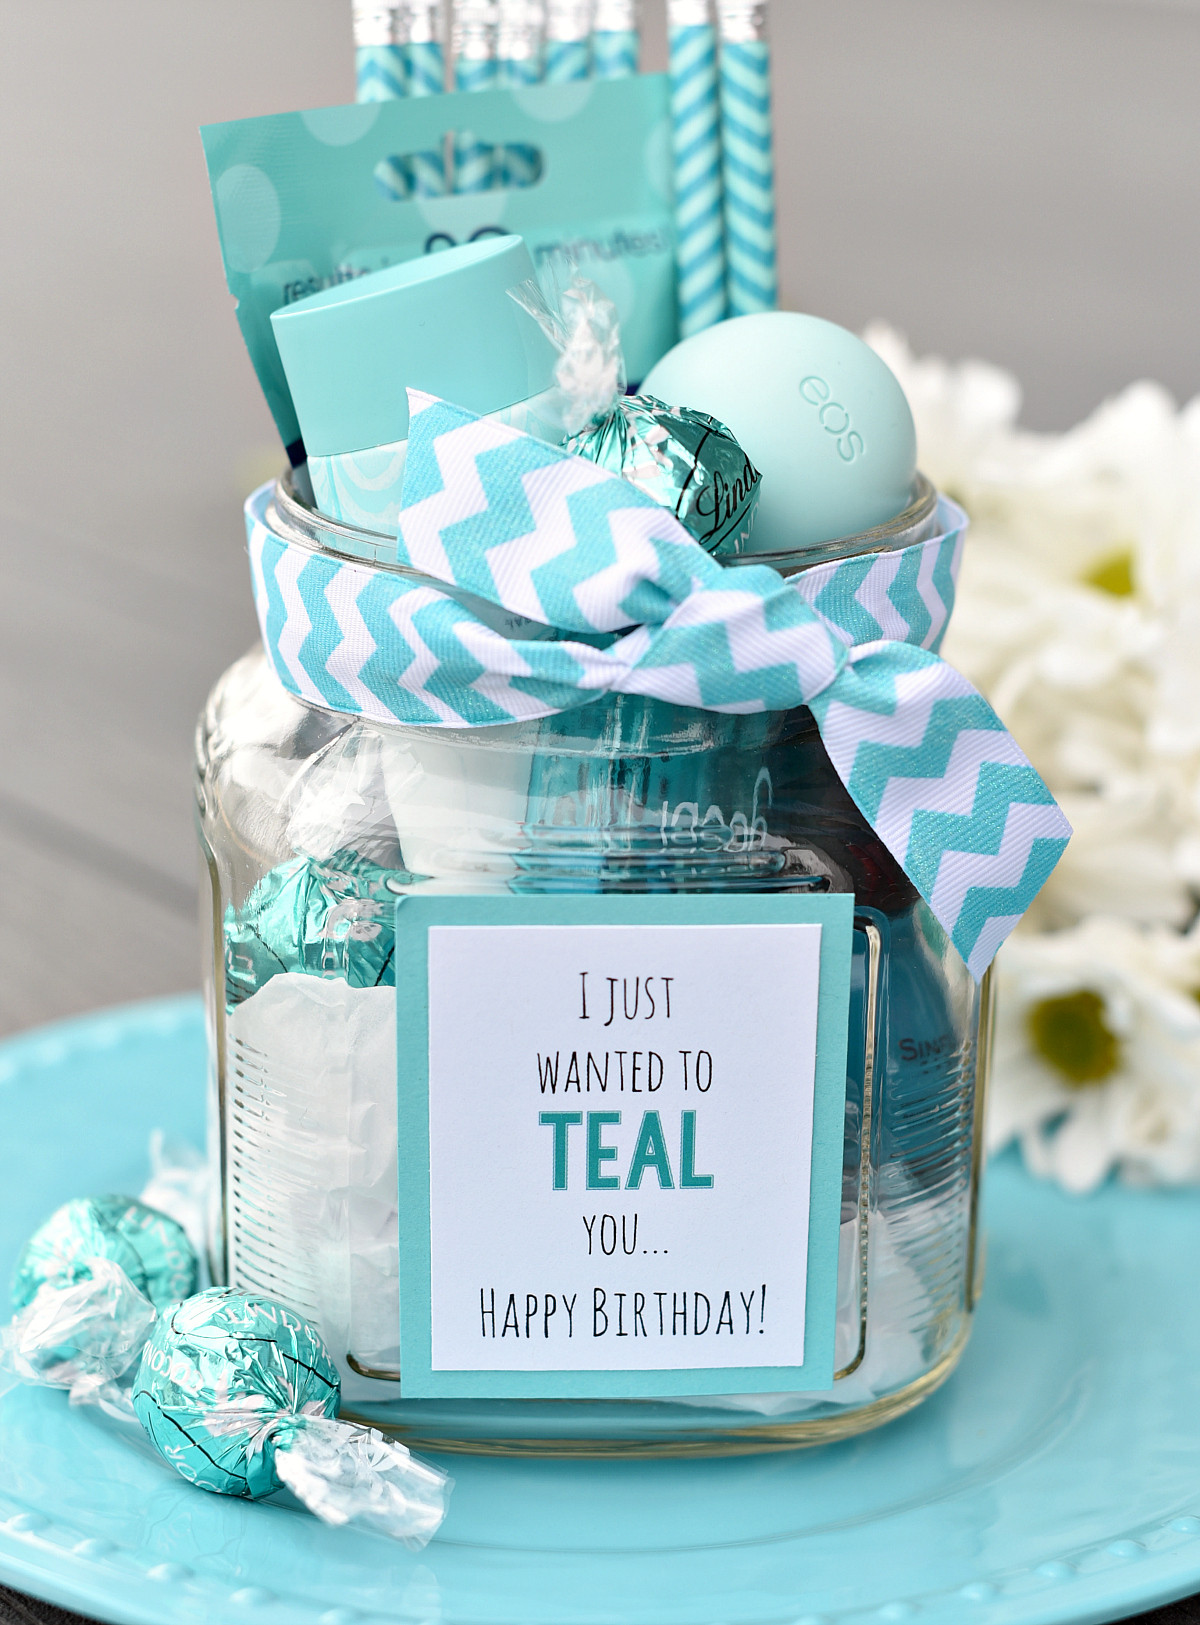 Best Friend Birthday Gift Ideas  Teal Birthday Gift Idea for Friends – Fun Squared